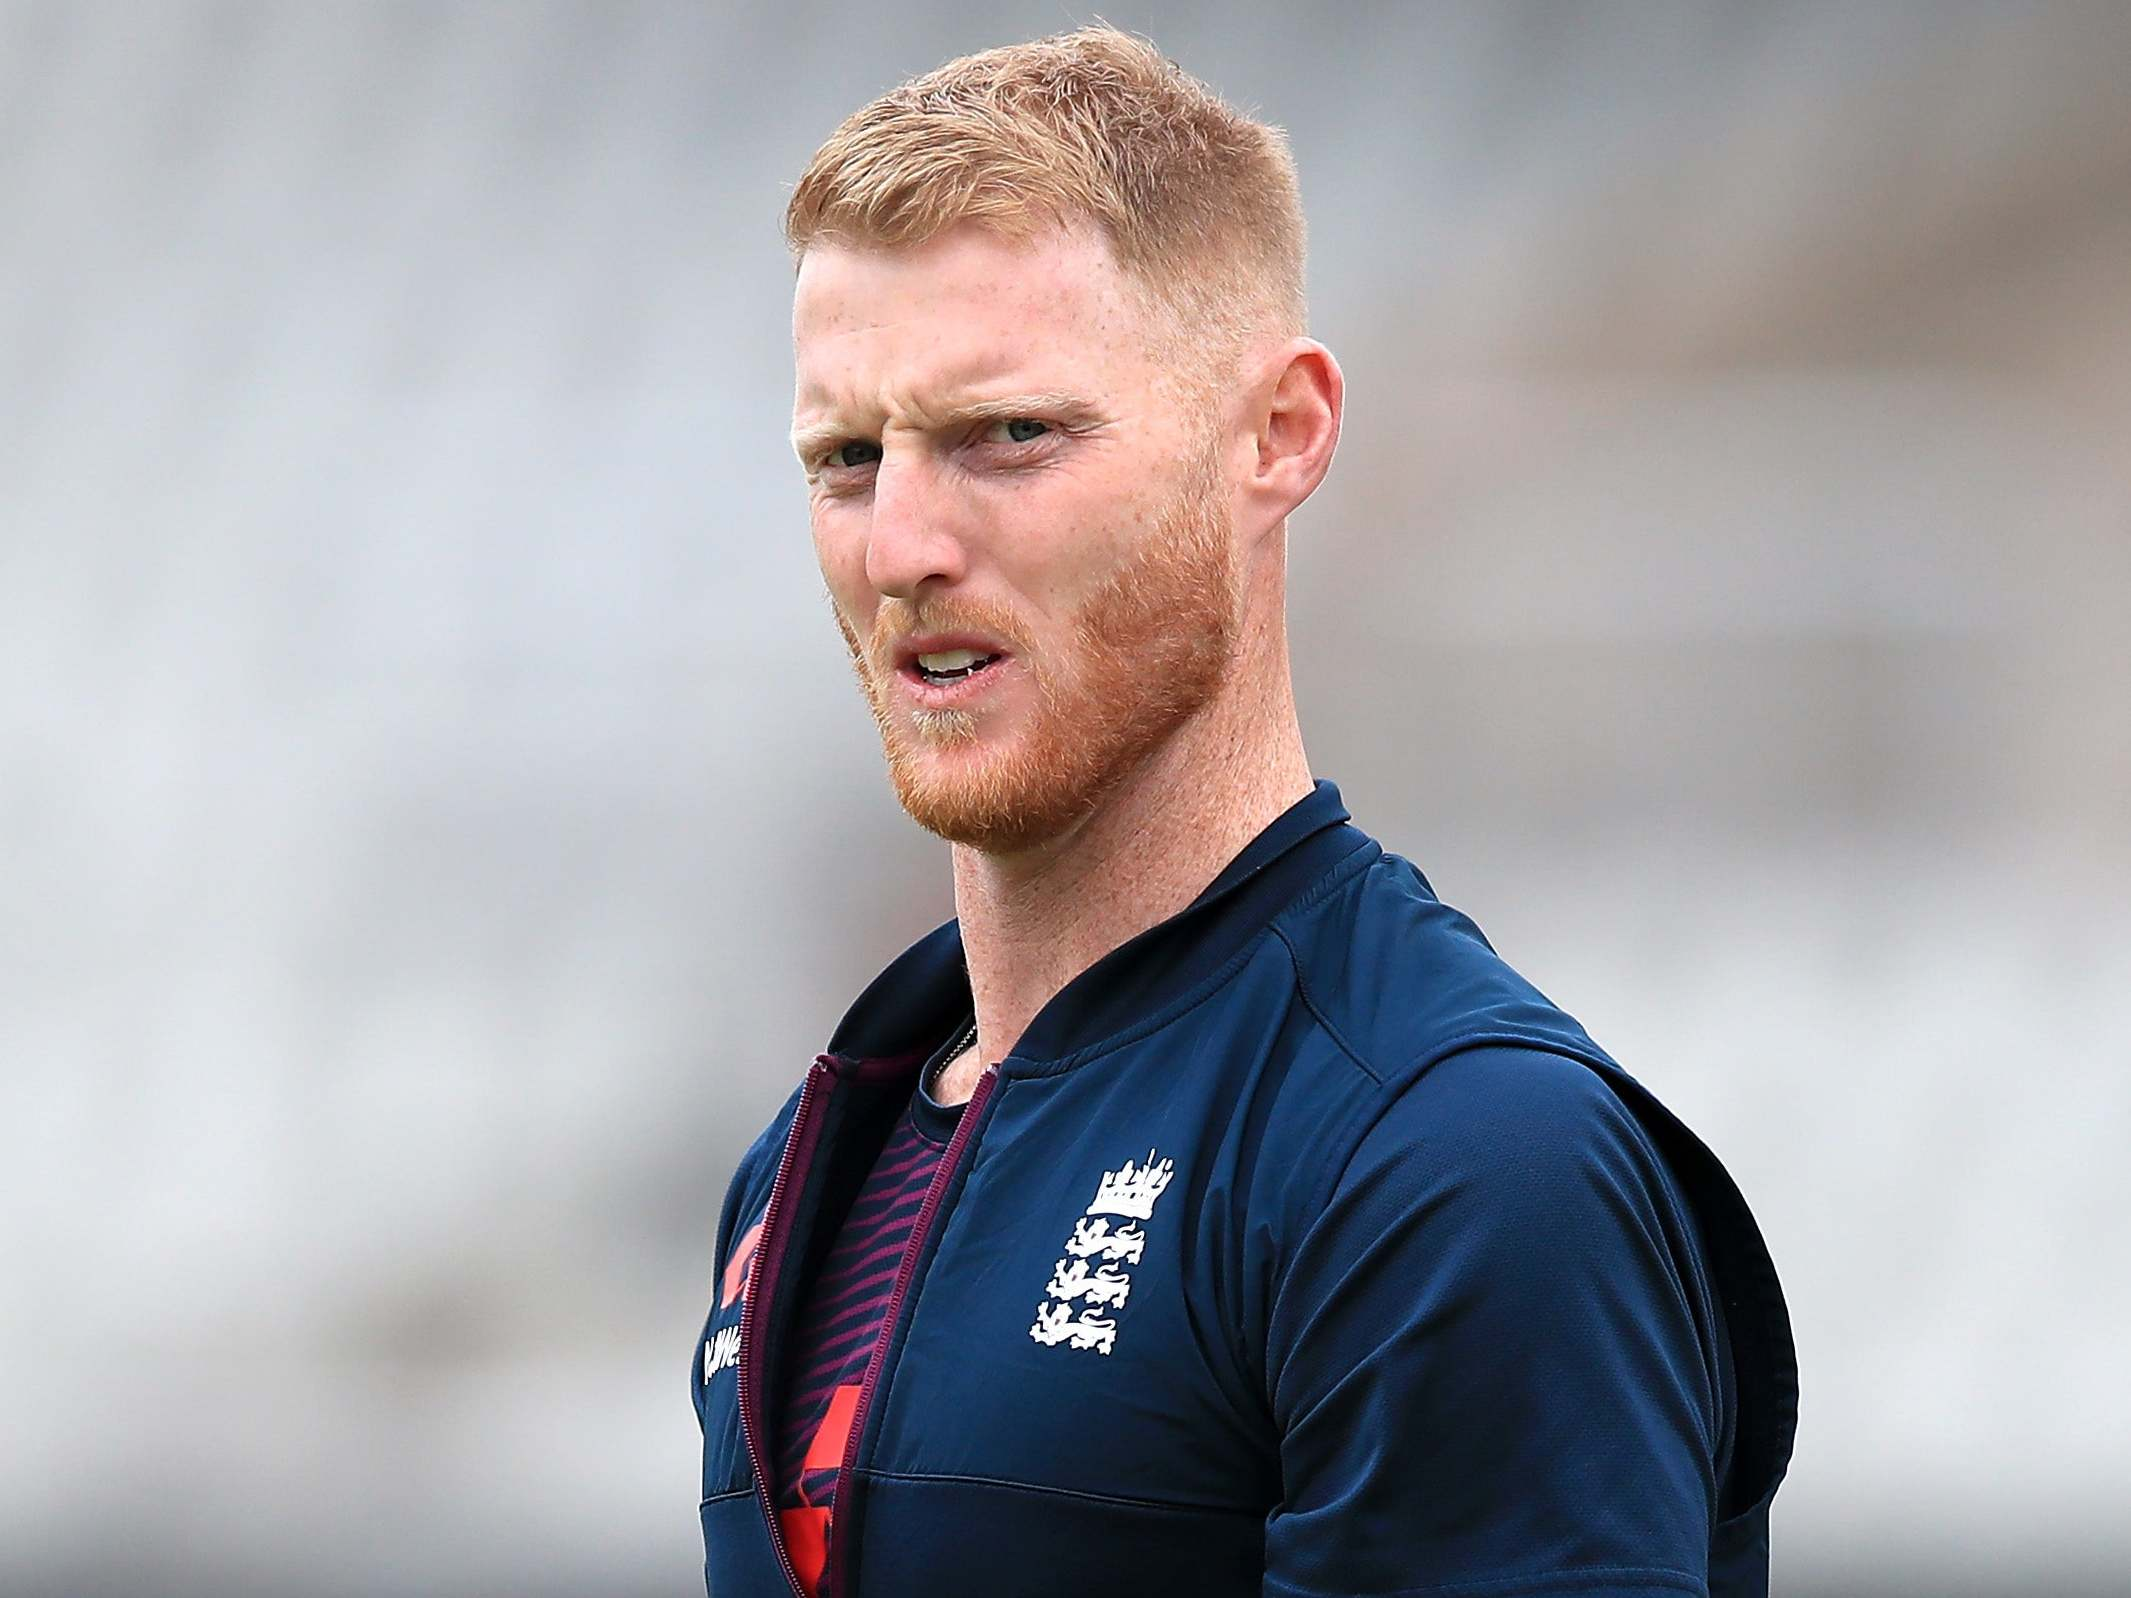 Ben Stokes's wife says England cricketer was 'messing about' in phot…